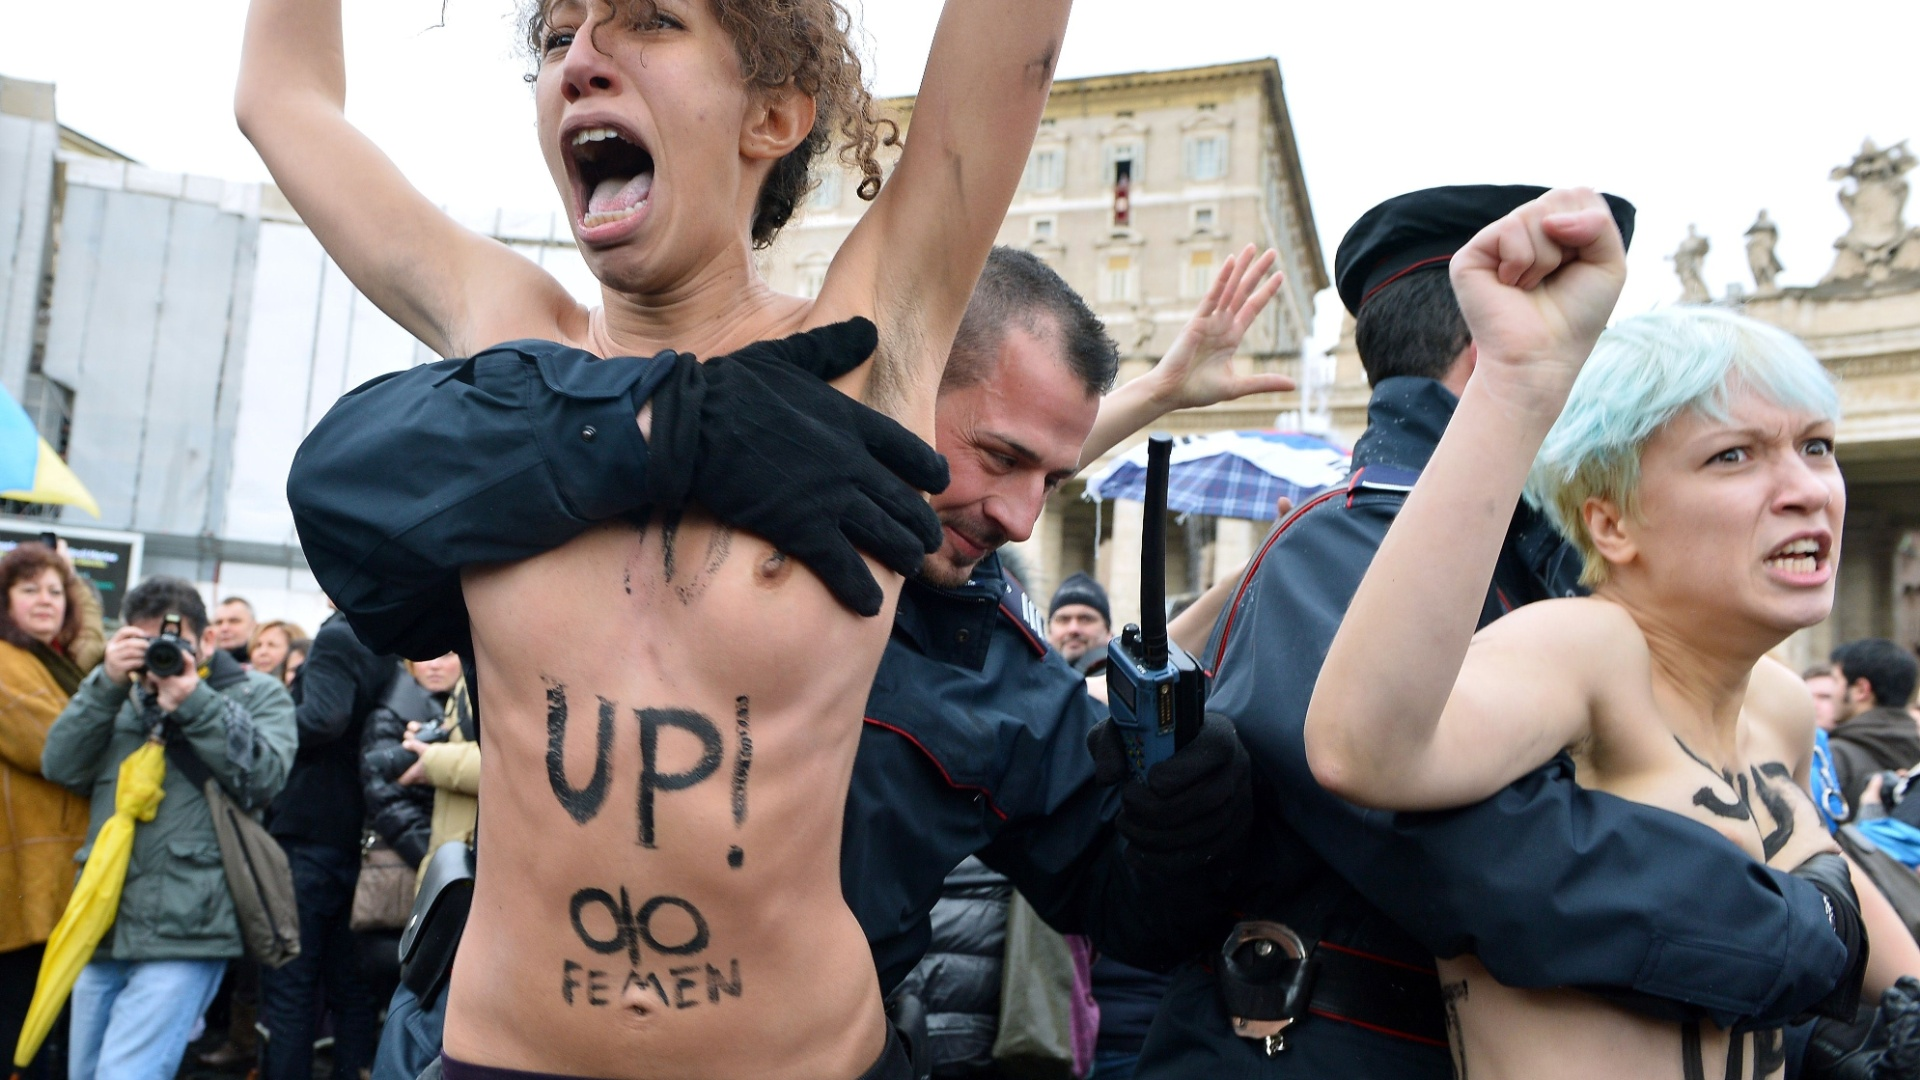 13.jan.2013 - Ativistas ucranianas do grupo Femen protestam seminuas na Praa So Pedro, no Vaticano; frases como 'Nos gays ns acreditamos' estavam pintadas no corpo das manifestantes